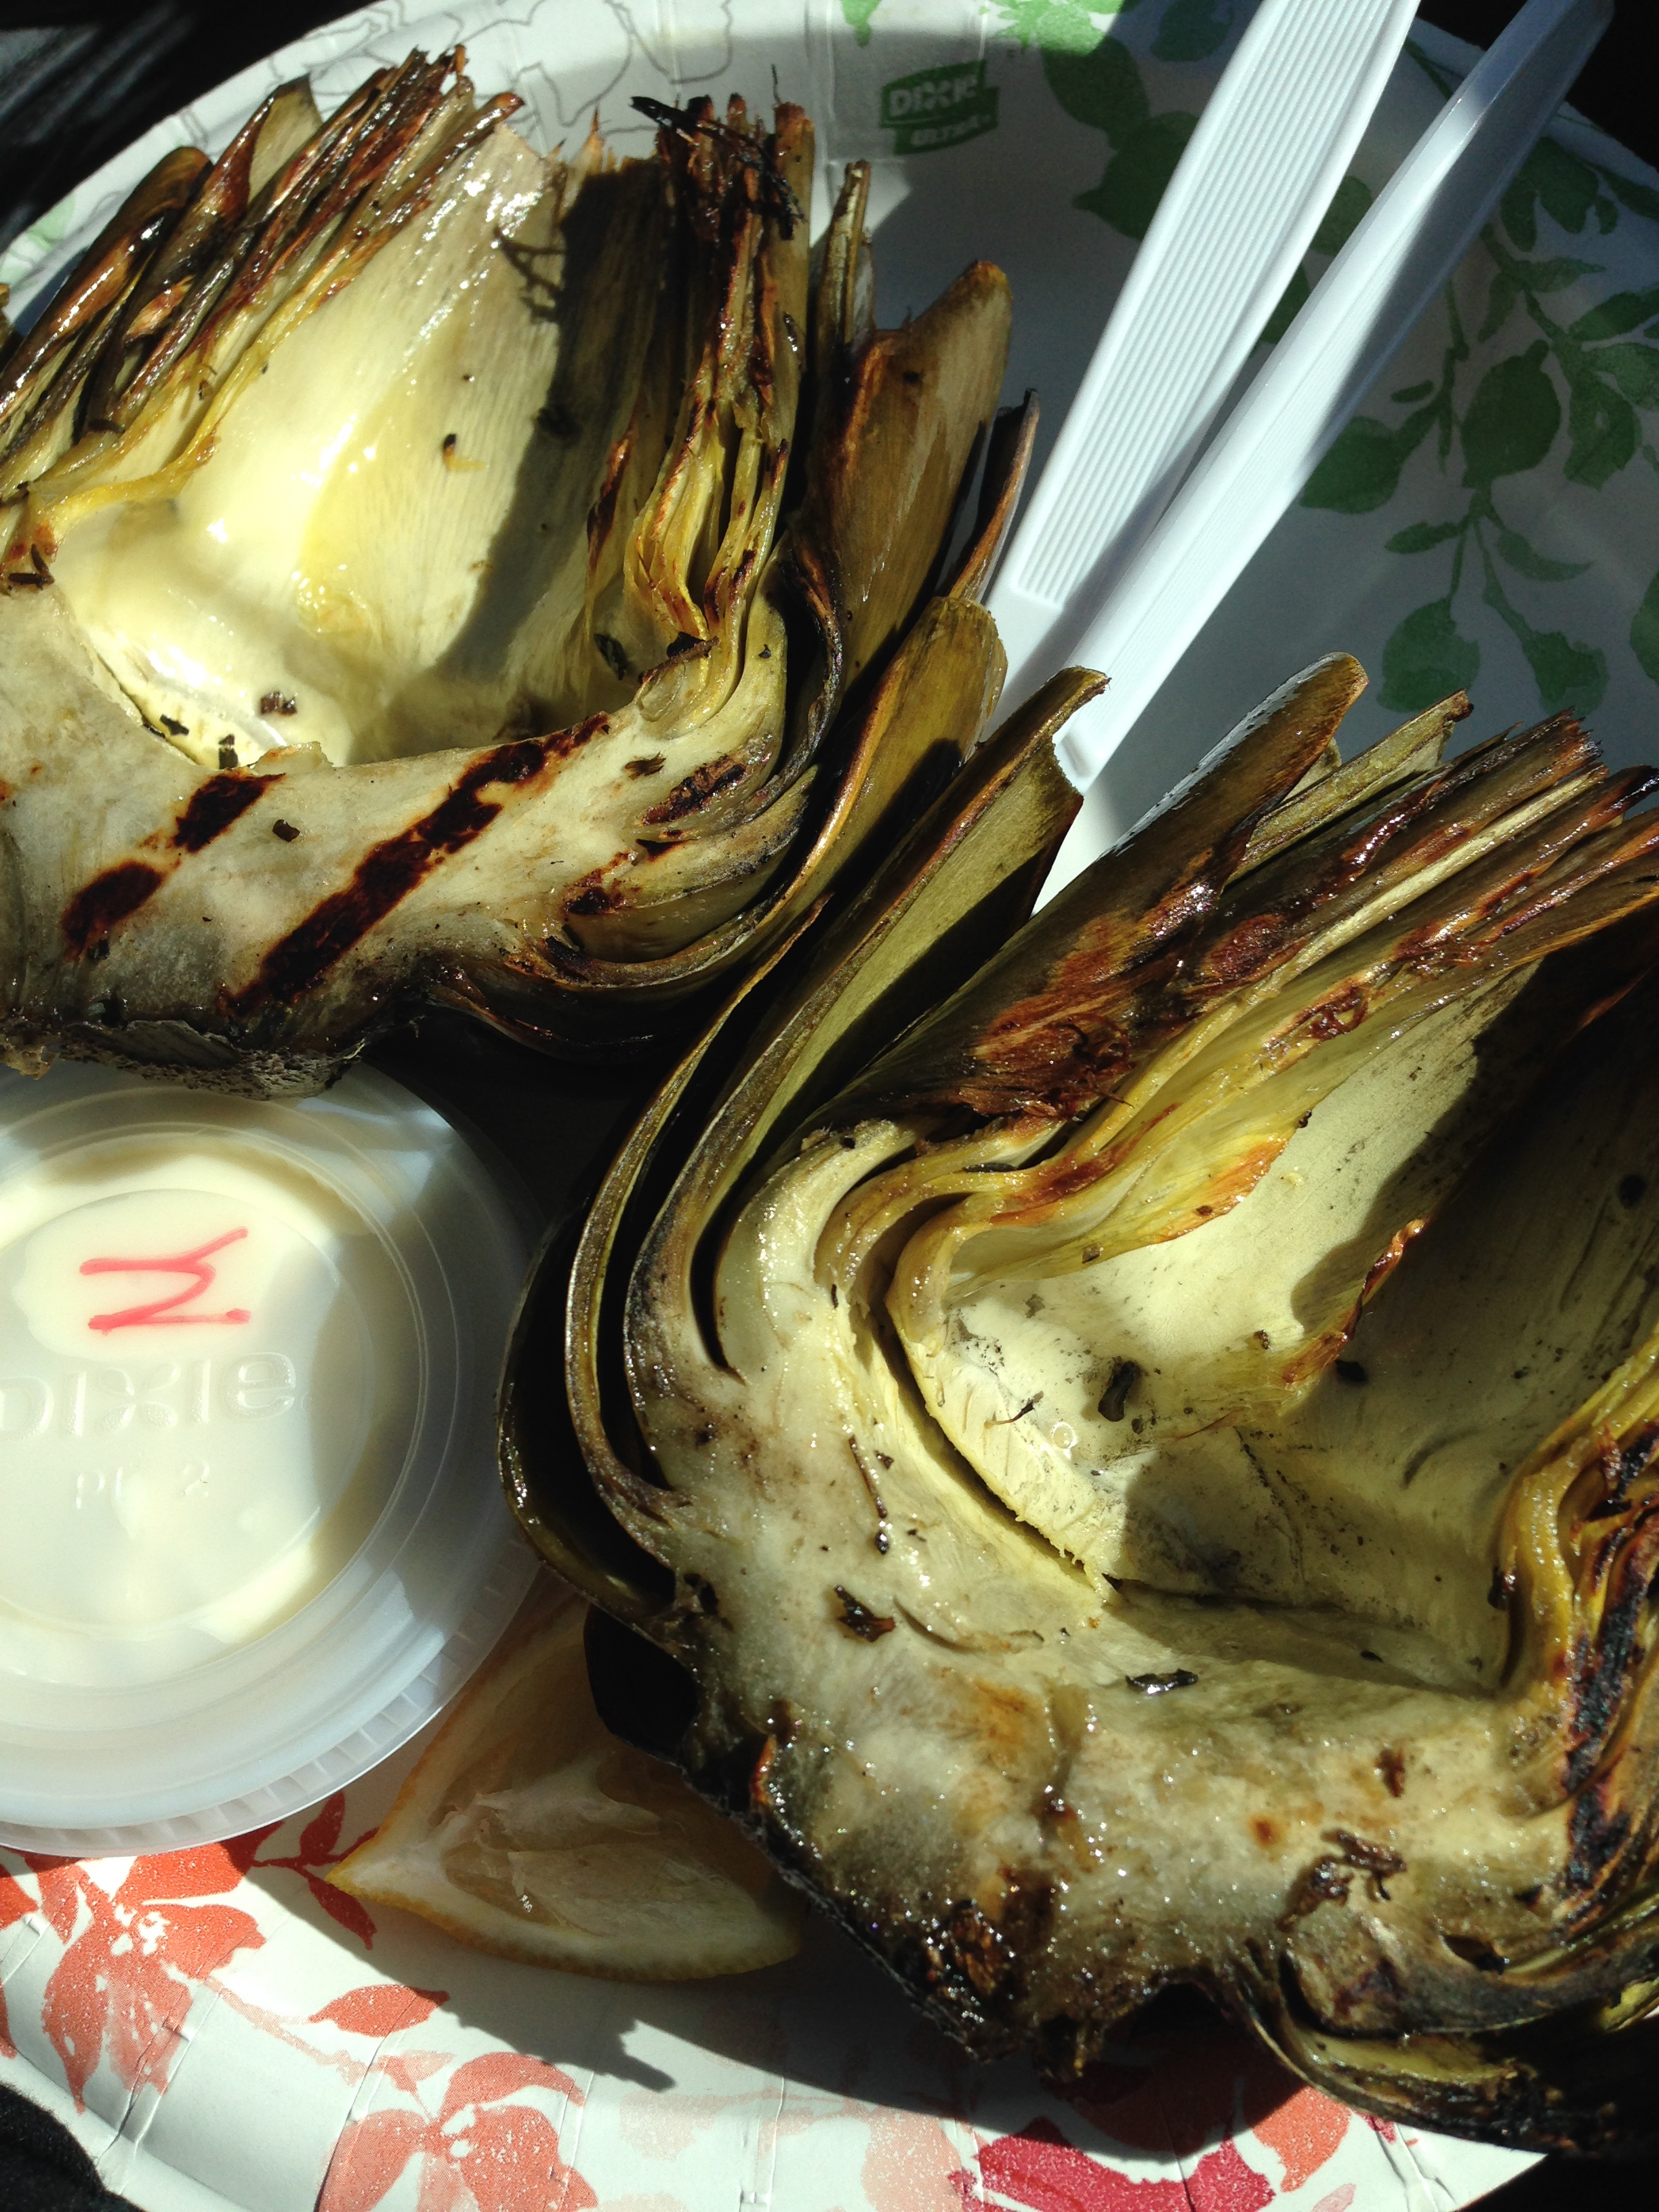 Grilled artichokes are incredible.